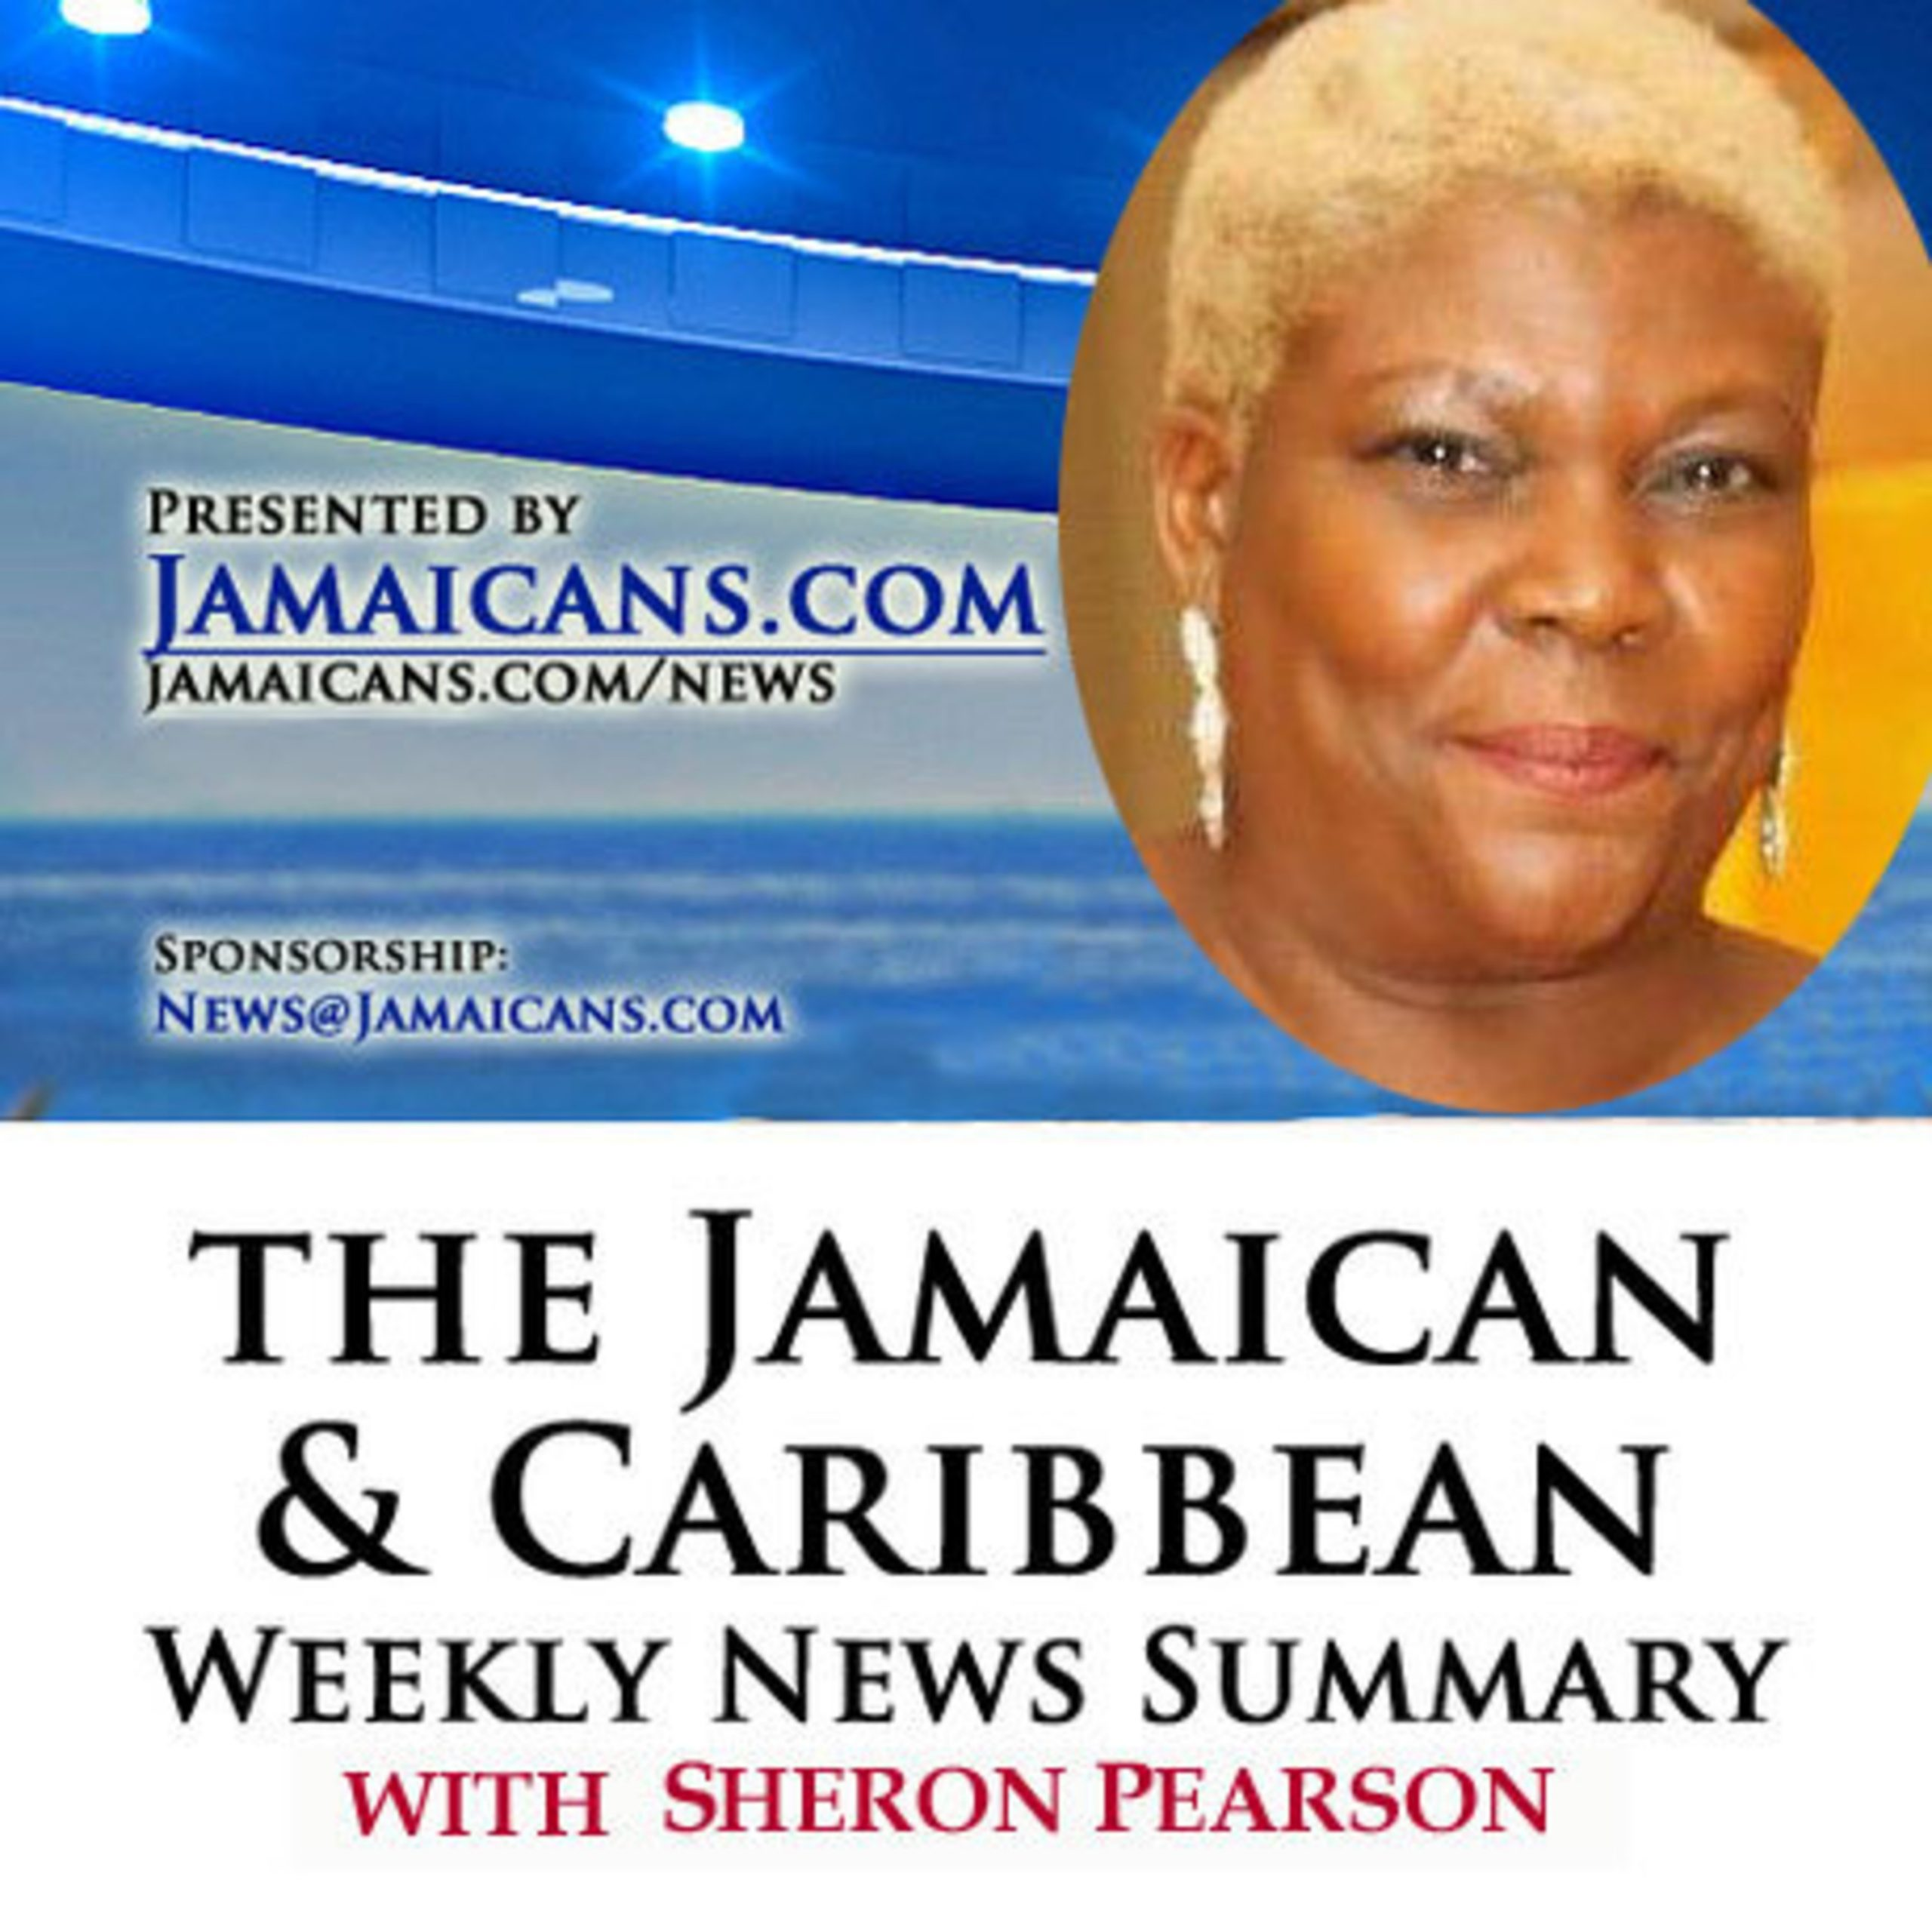 Listen to the Podcast of The Jamaica & Caribbean Weekly News Summary for the week ending February 28, 2020